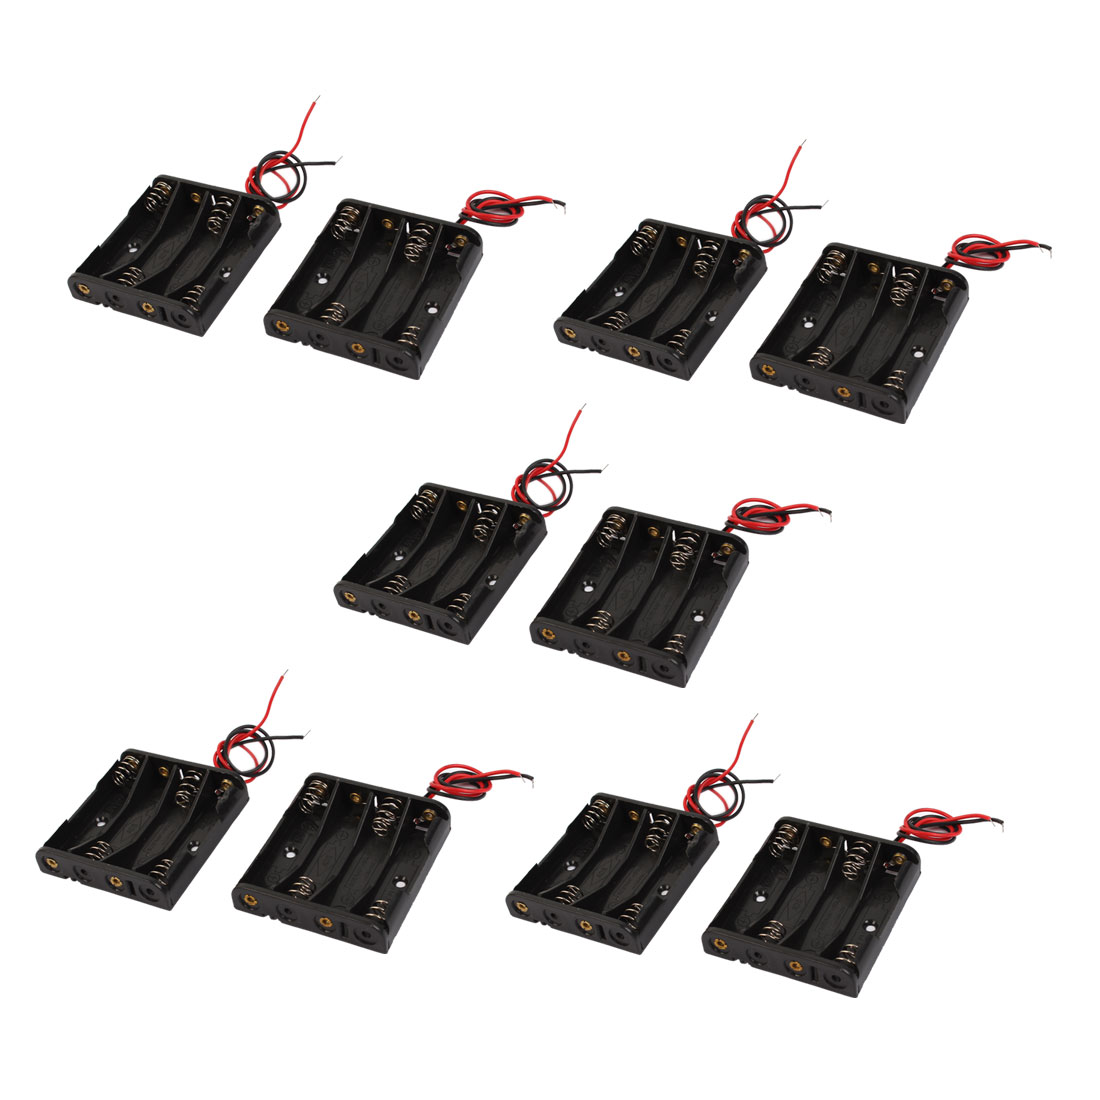 10 Pcs Wired Leads Black Battery Storage Case Slot Holder 4 x 1.5V AAA